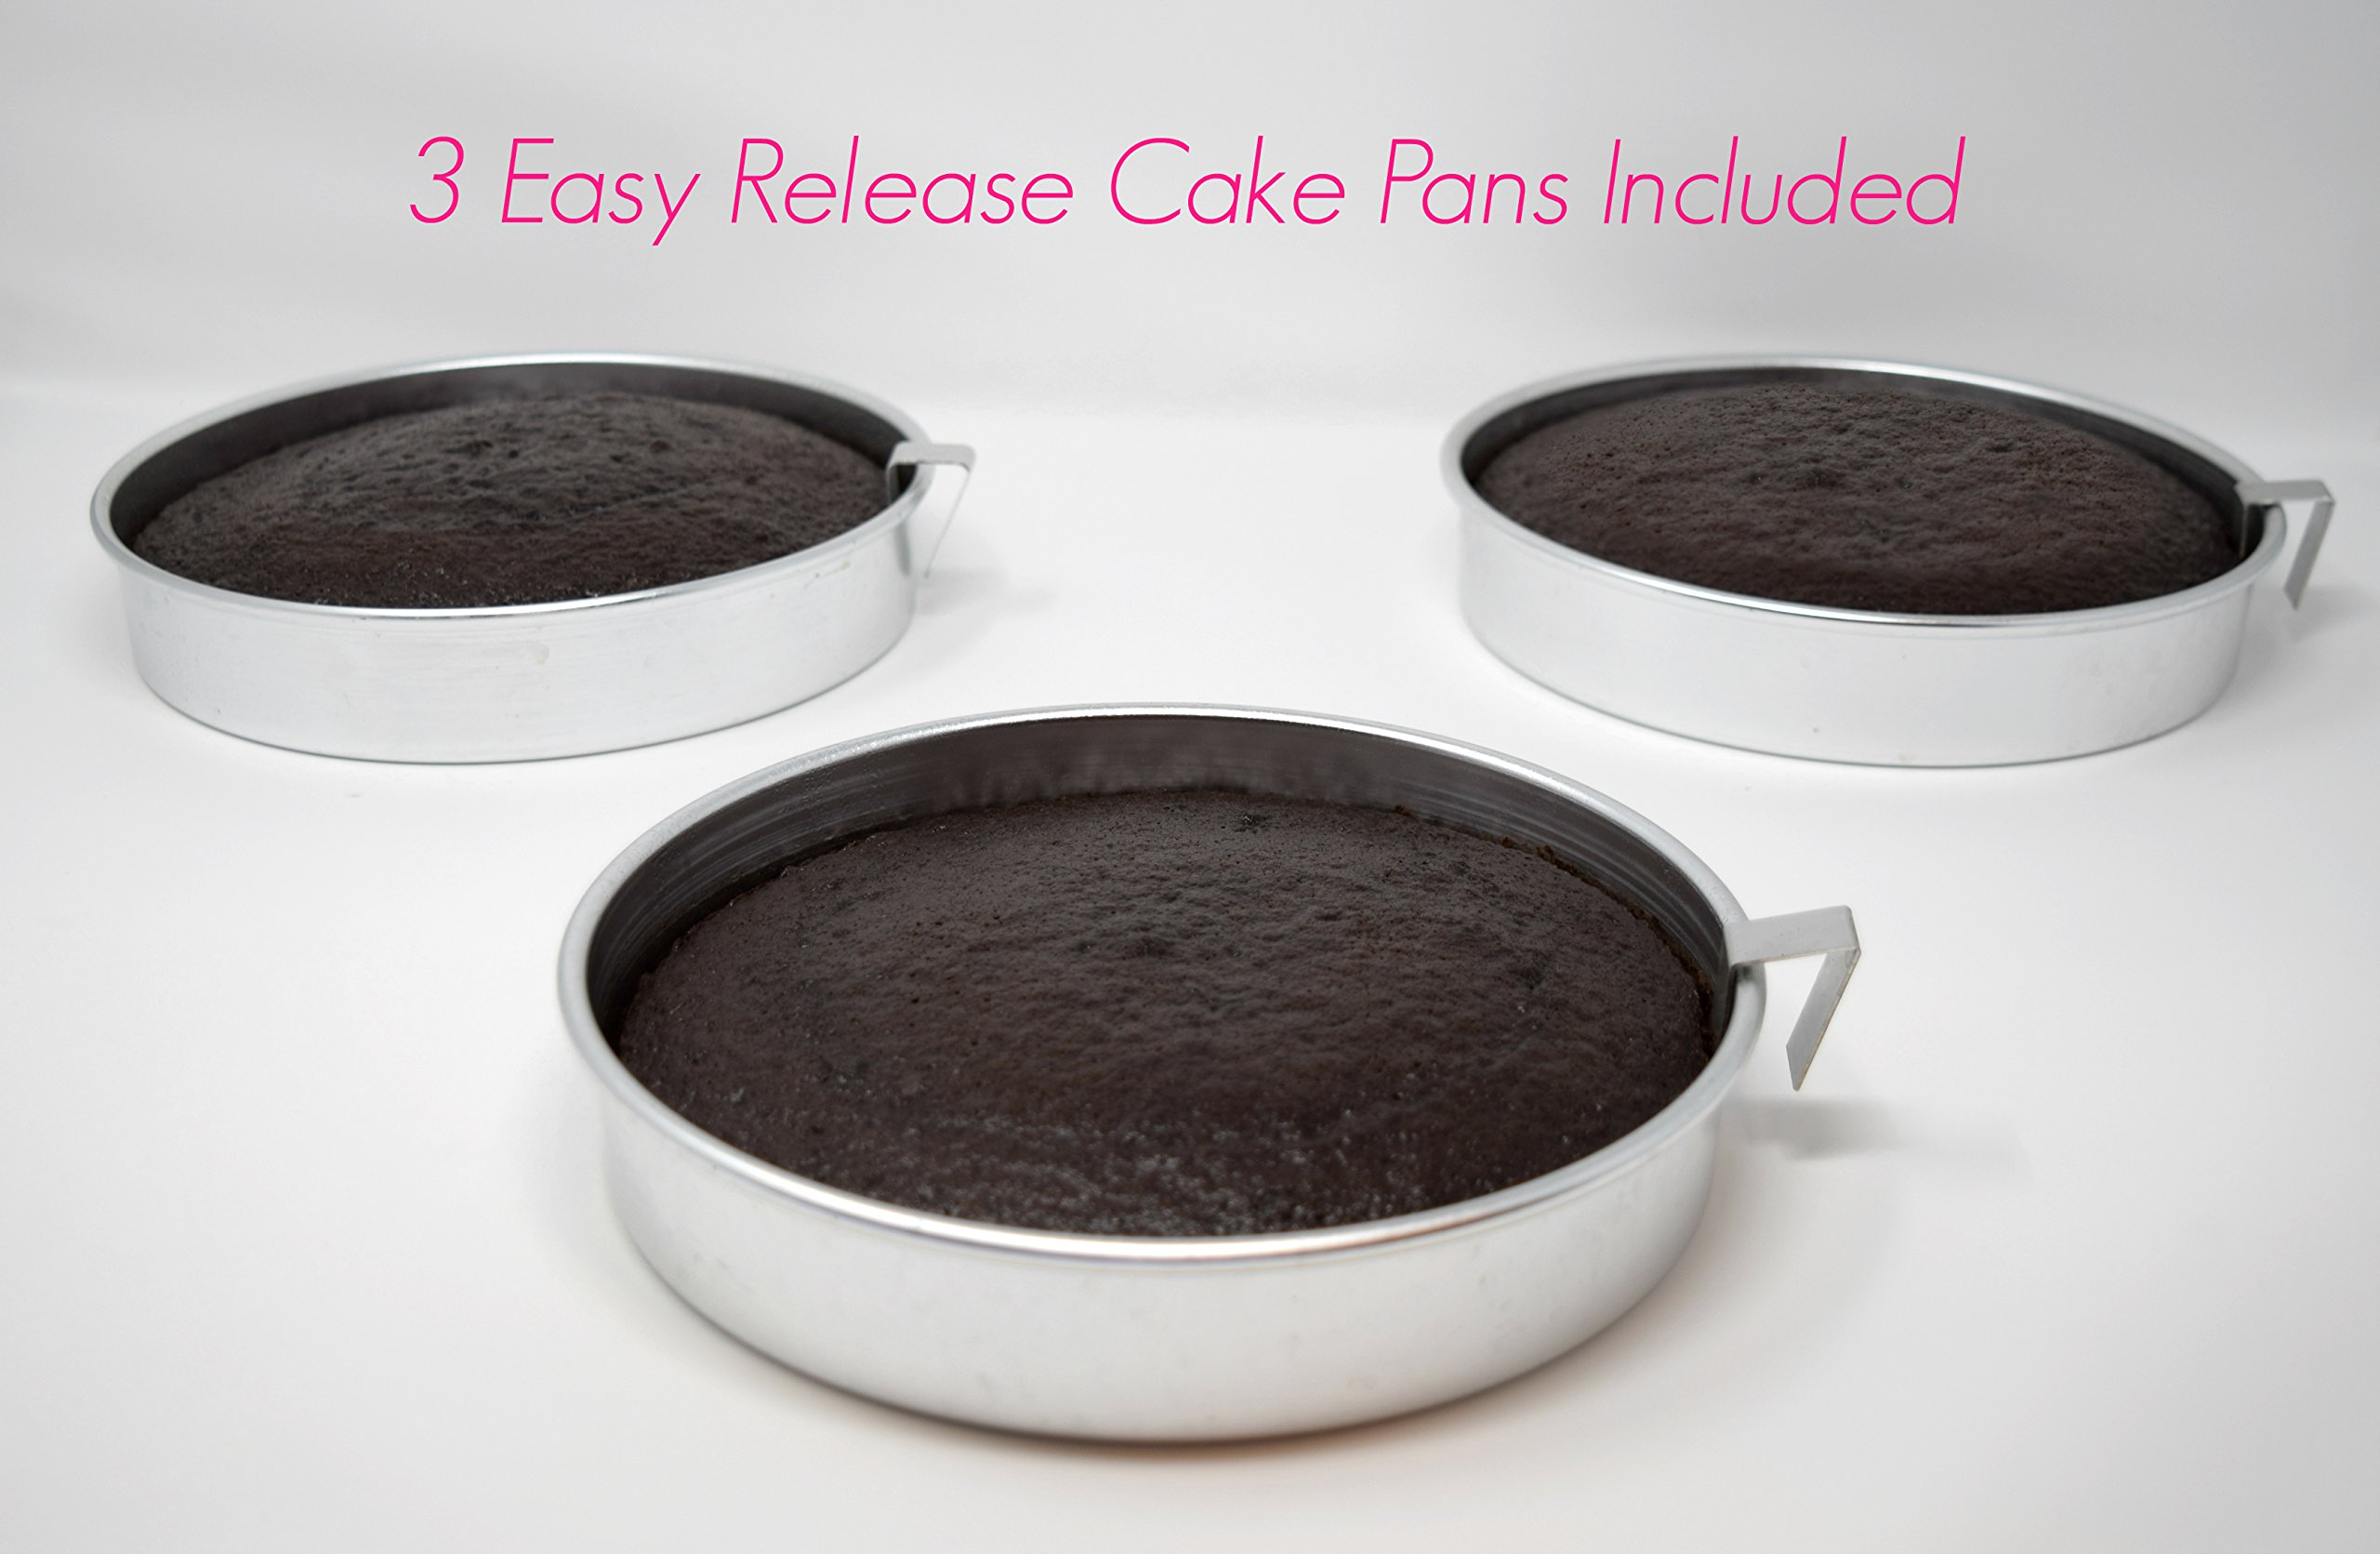 Aunt Shannon's Easy Release 8'' Cake Pans - Set of 3 Quick Release Pans for Easy Cake Removal Every Time by Aunt Shannon's Kitchen (Image #6)